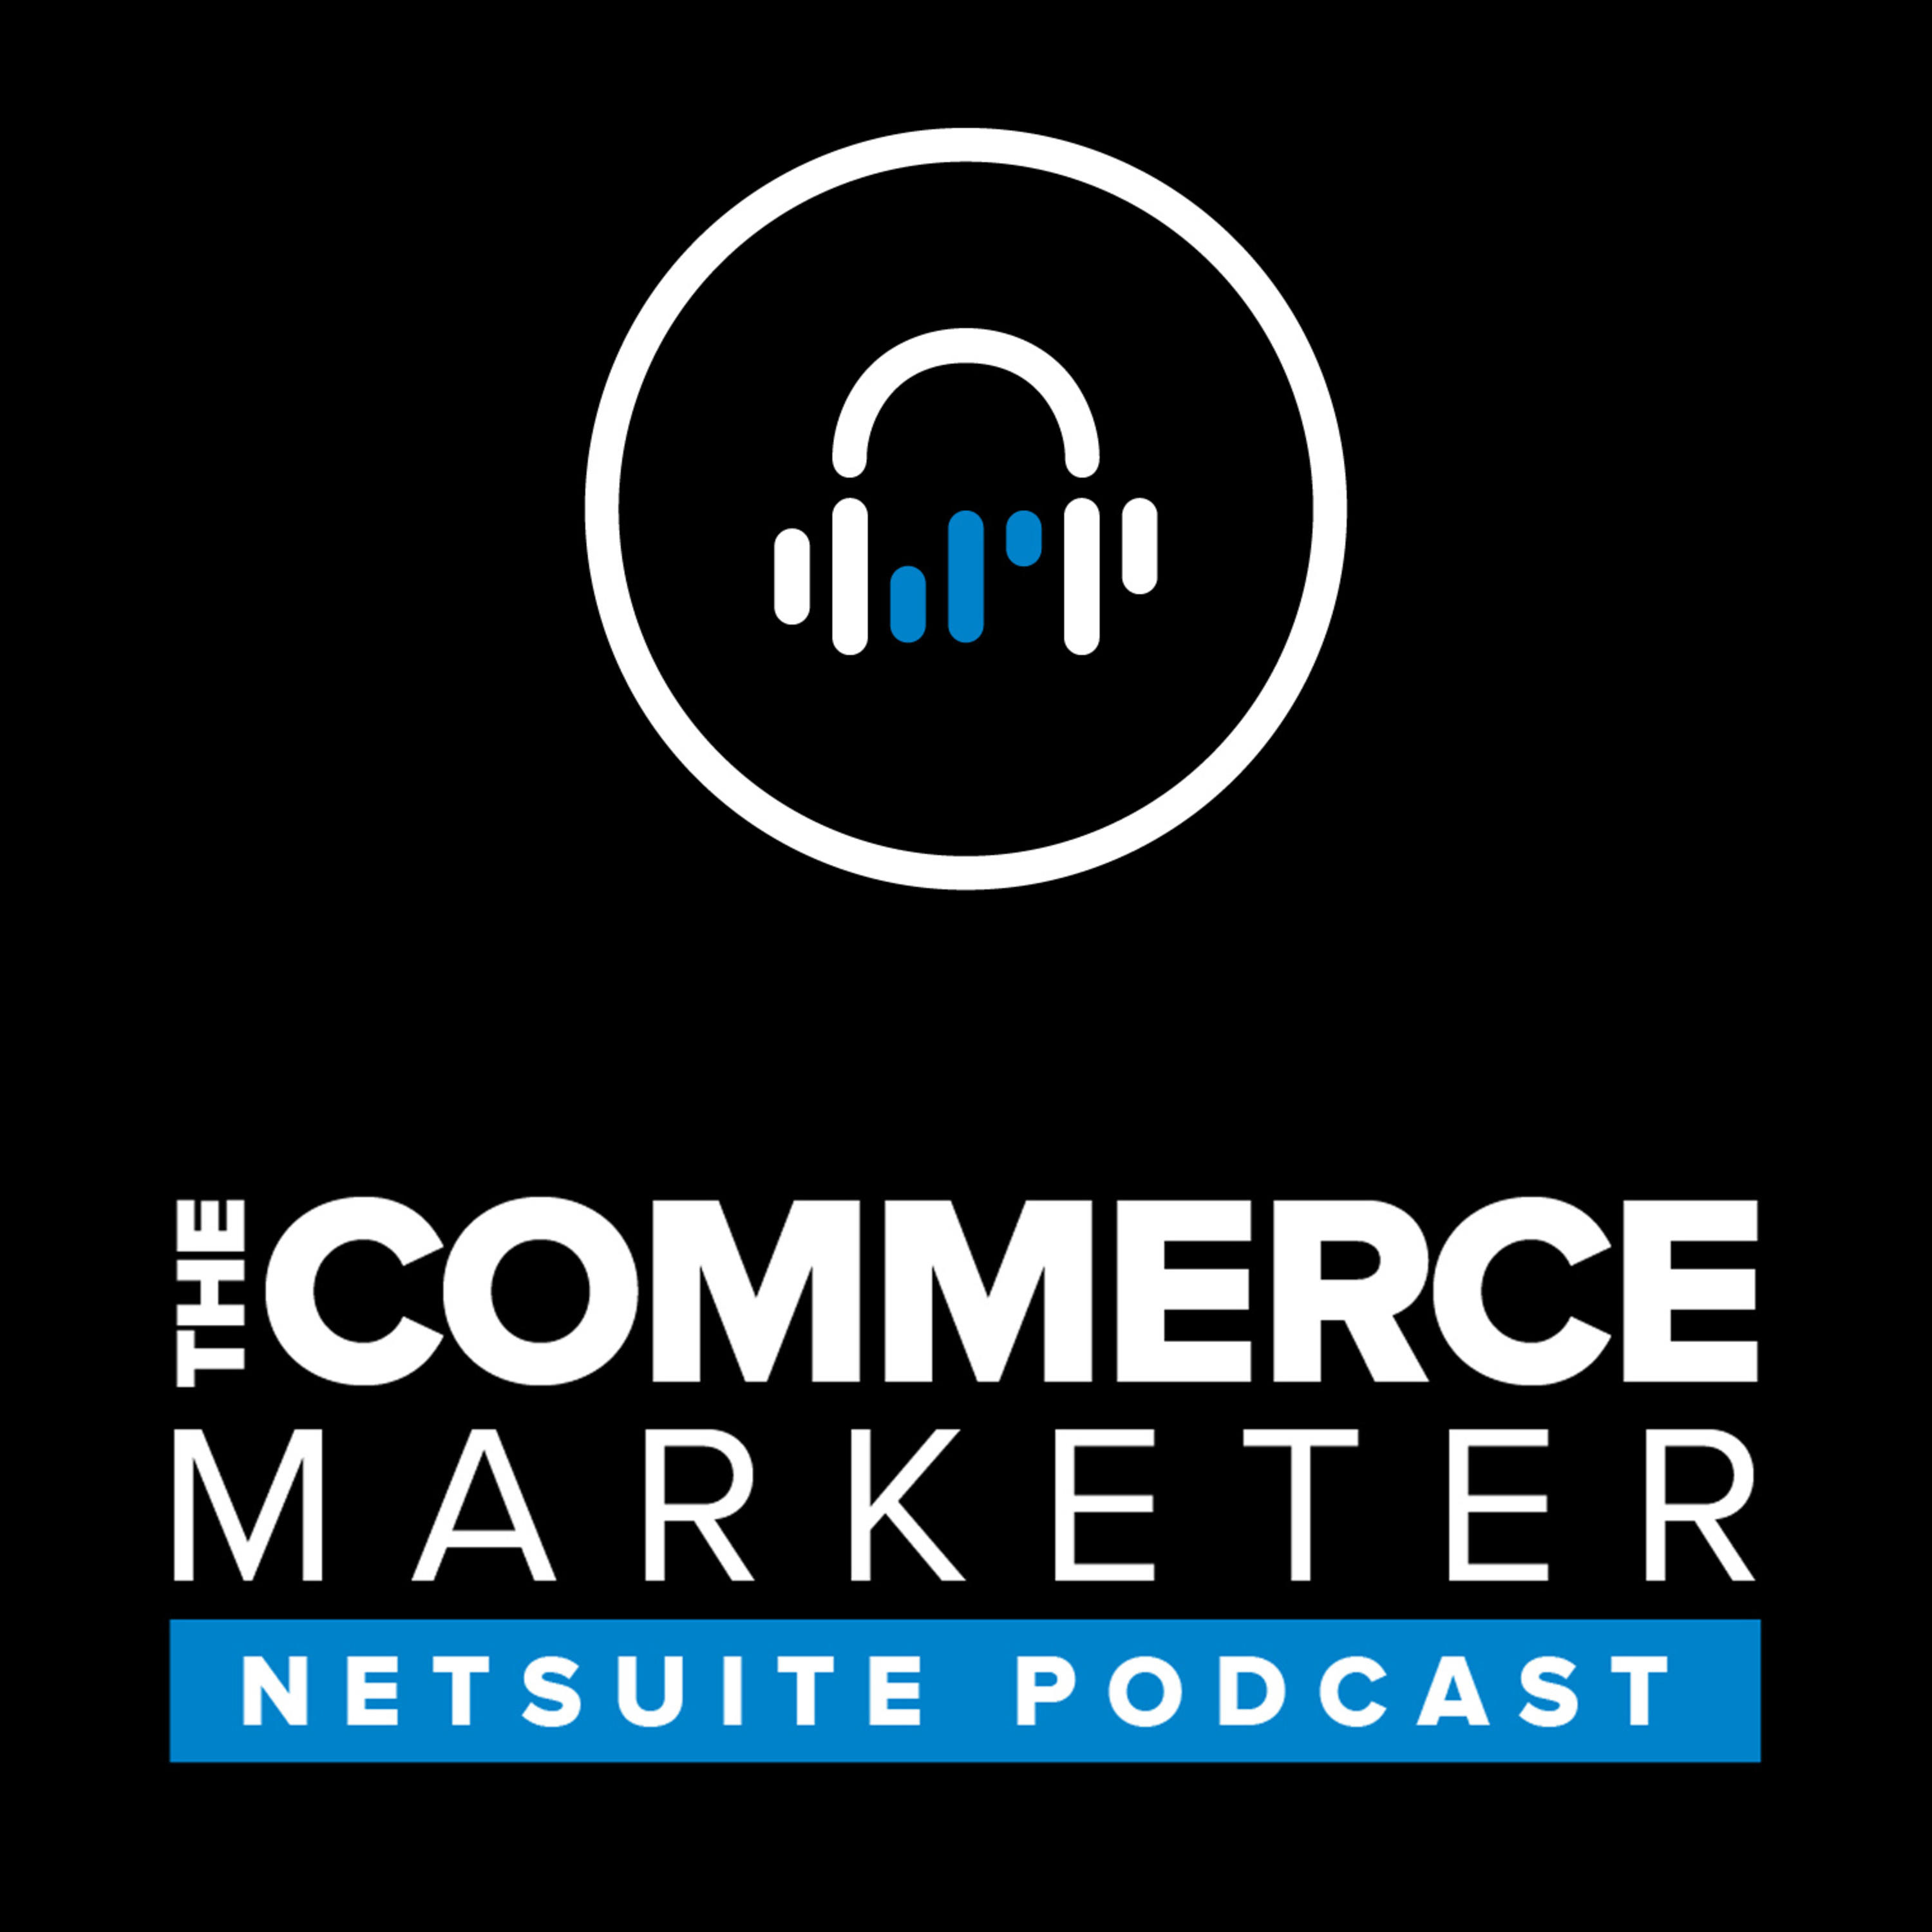 Episode 047: The Rise of BOPIS & What It Means for Retailers